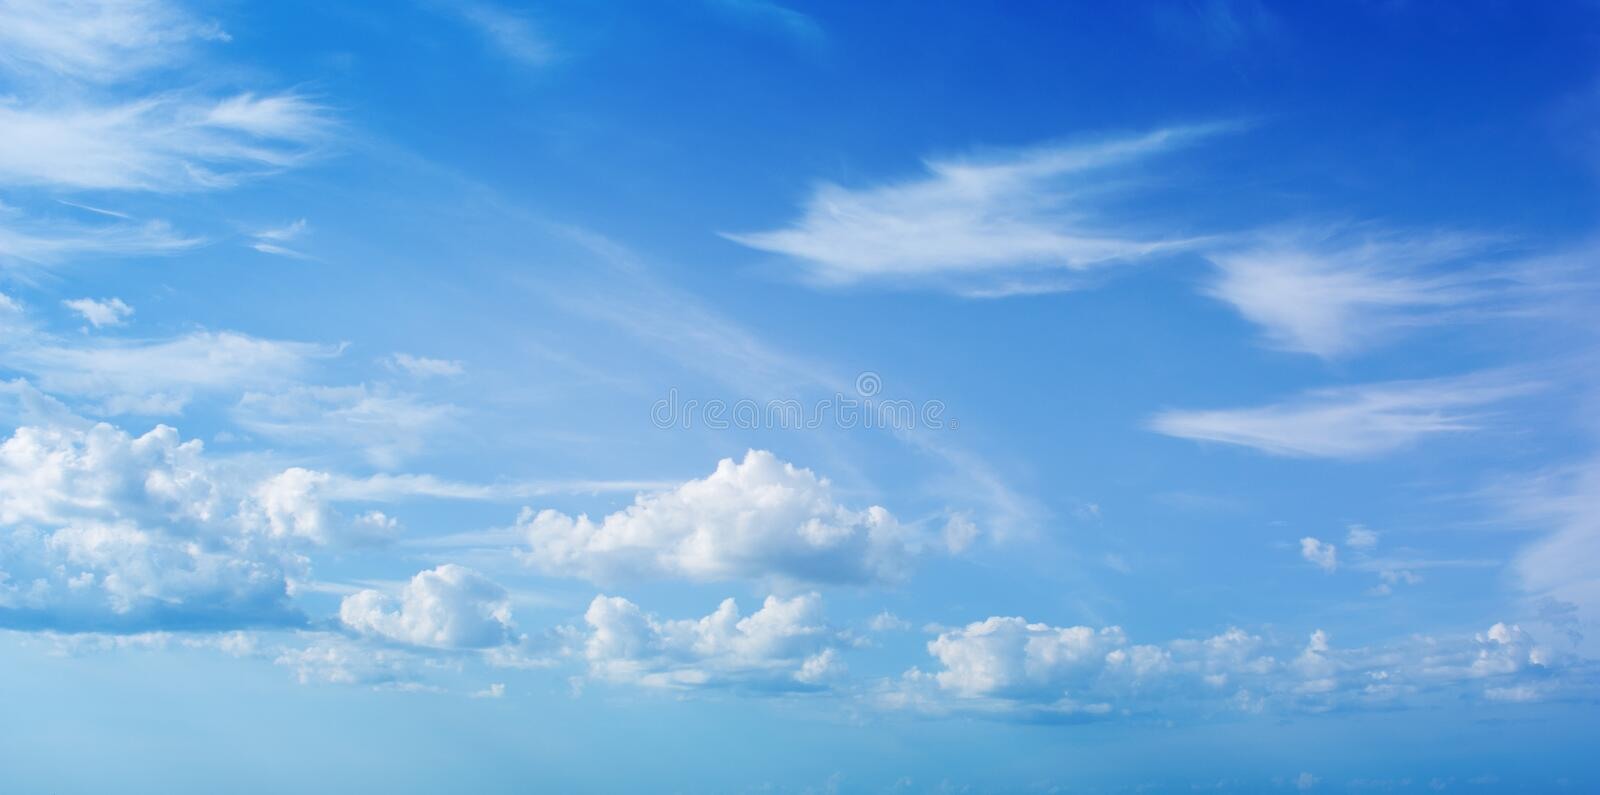 Sky and clouds. Natural banner stock image